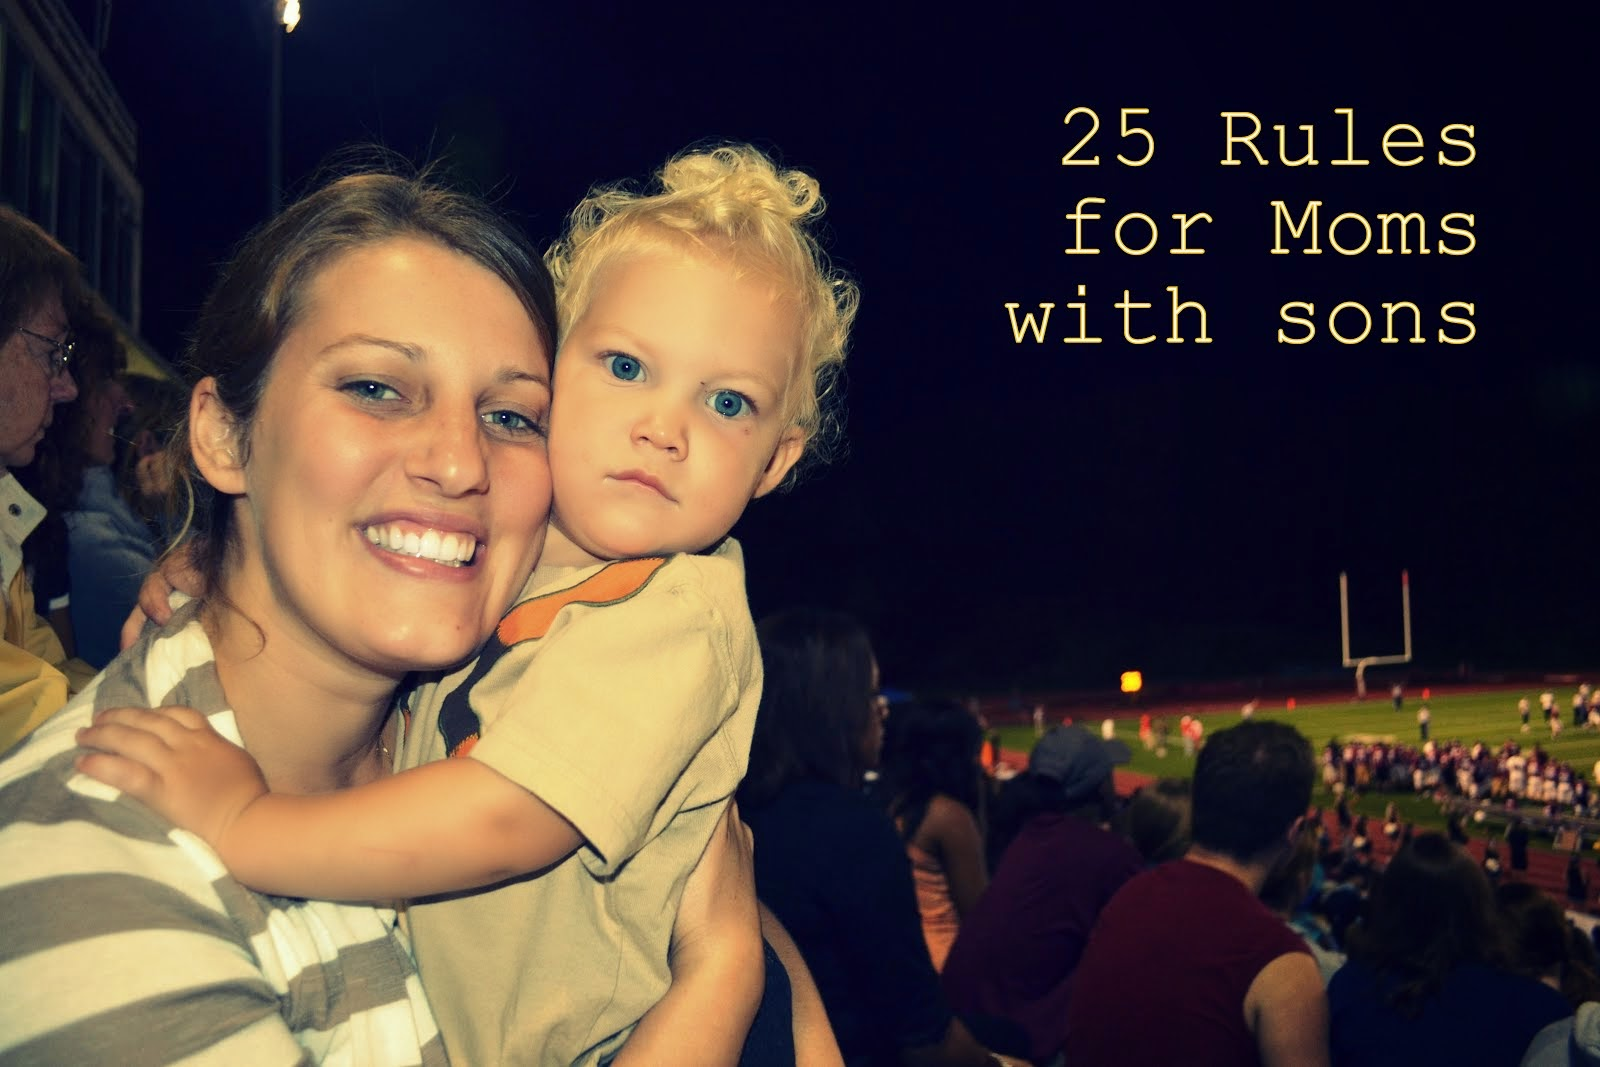 25 Rules for Moms with Sons